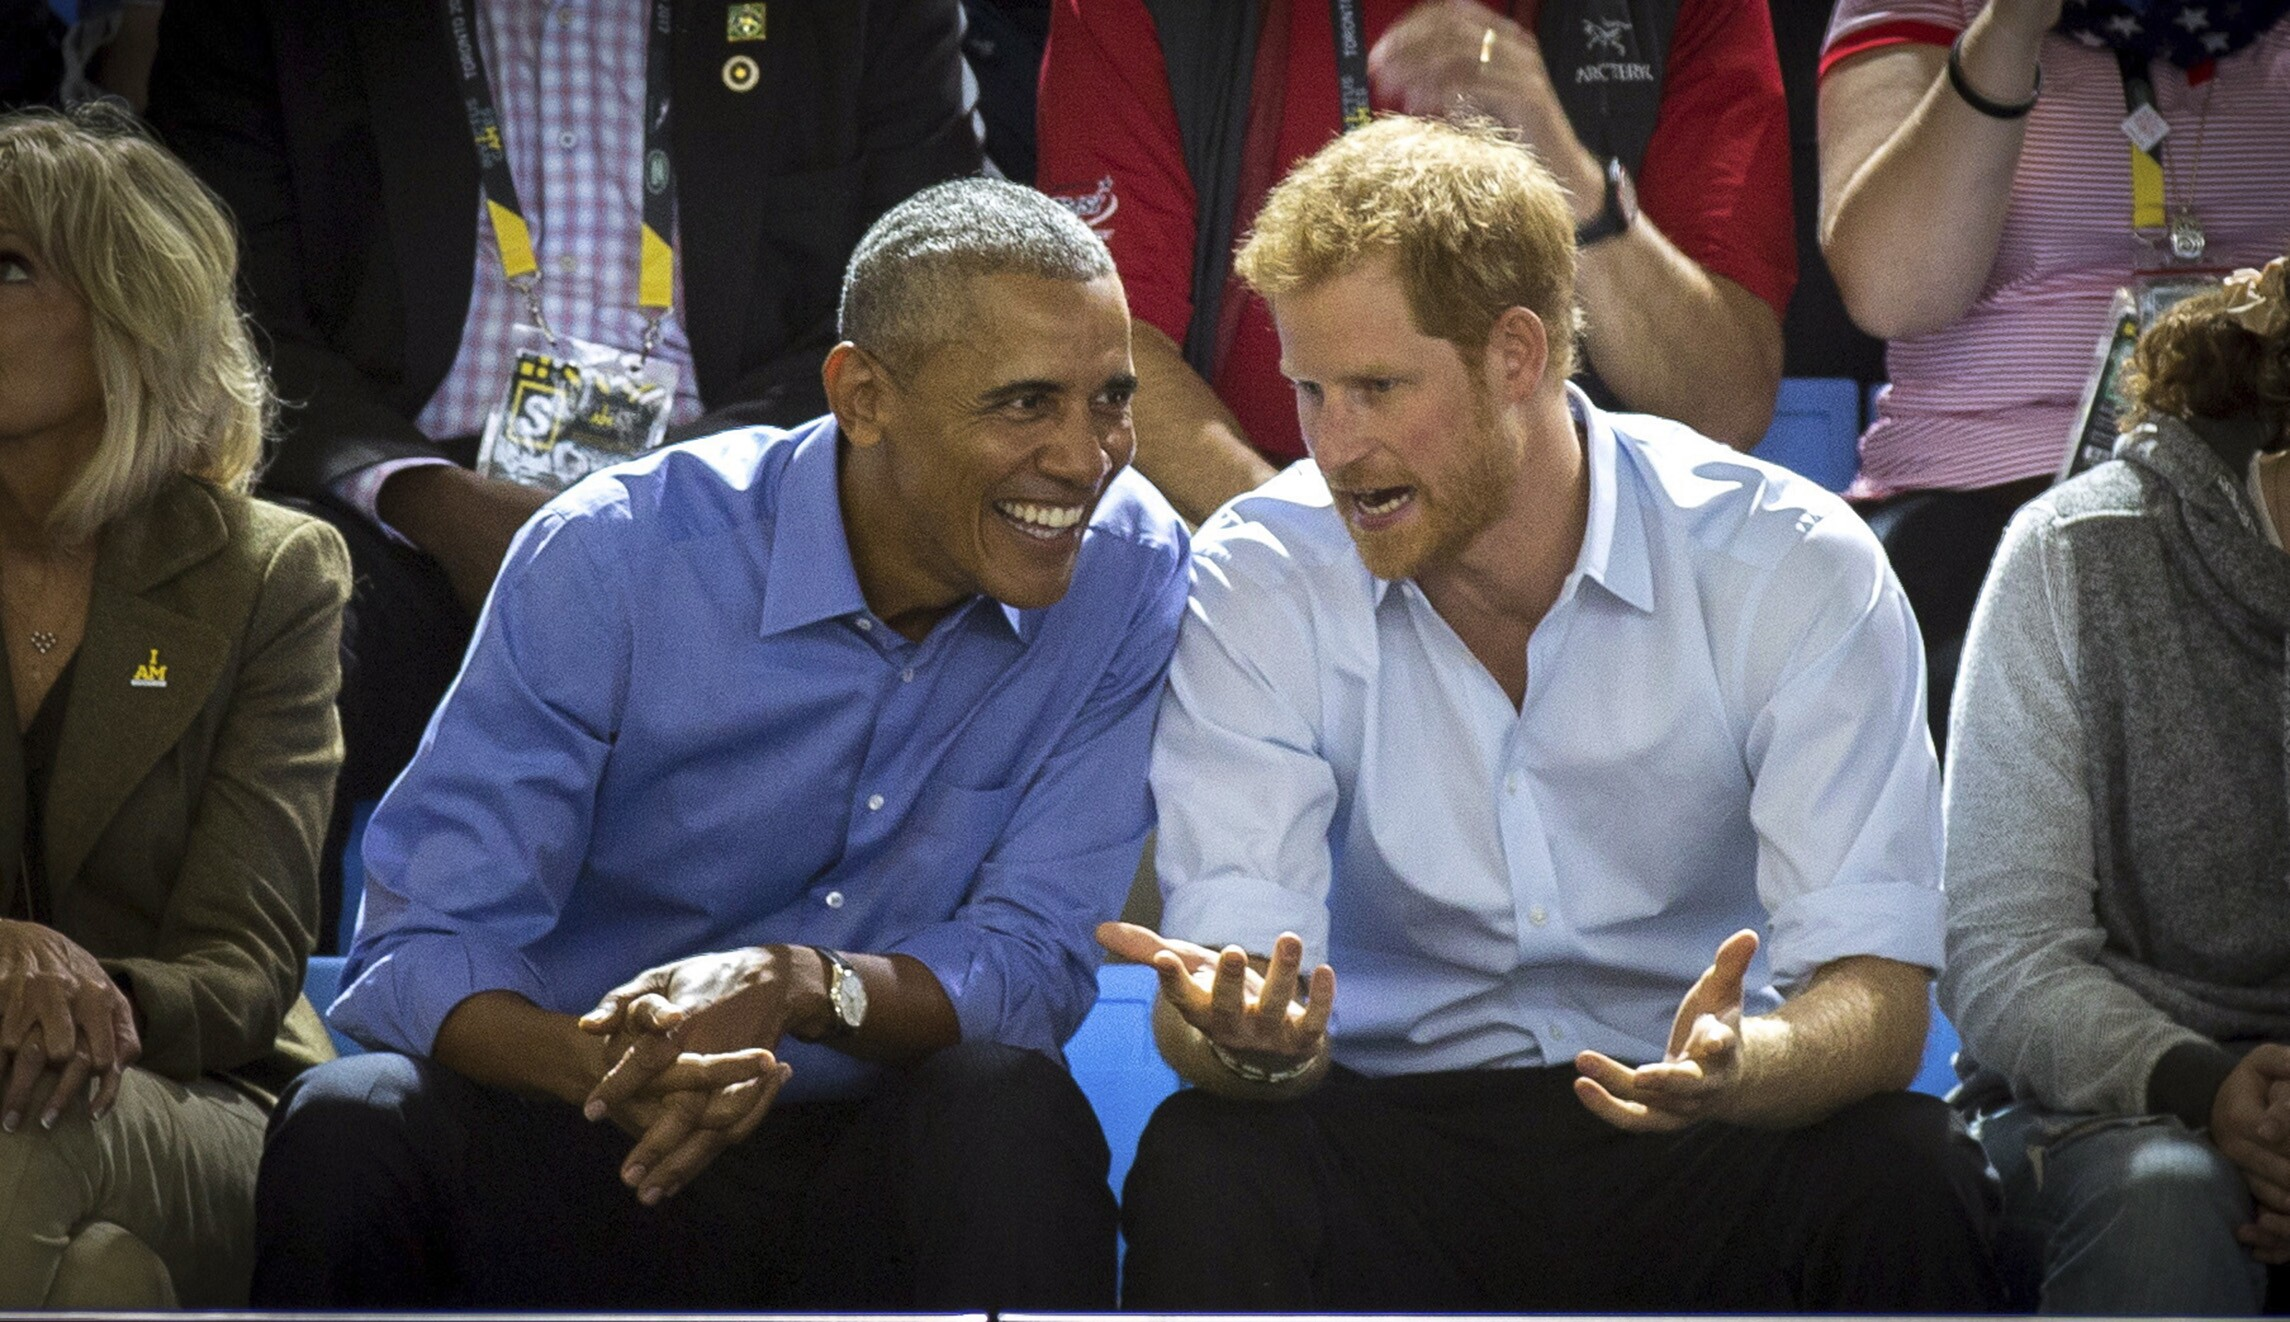 Were The Obamas Invited To The Royal Wedding.Prince Harry Declines To Say If Obama Will Be Invited To The Royal